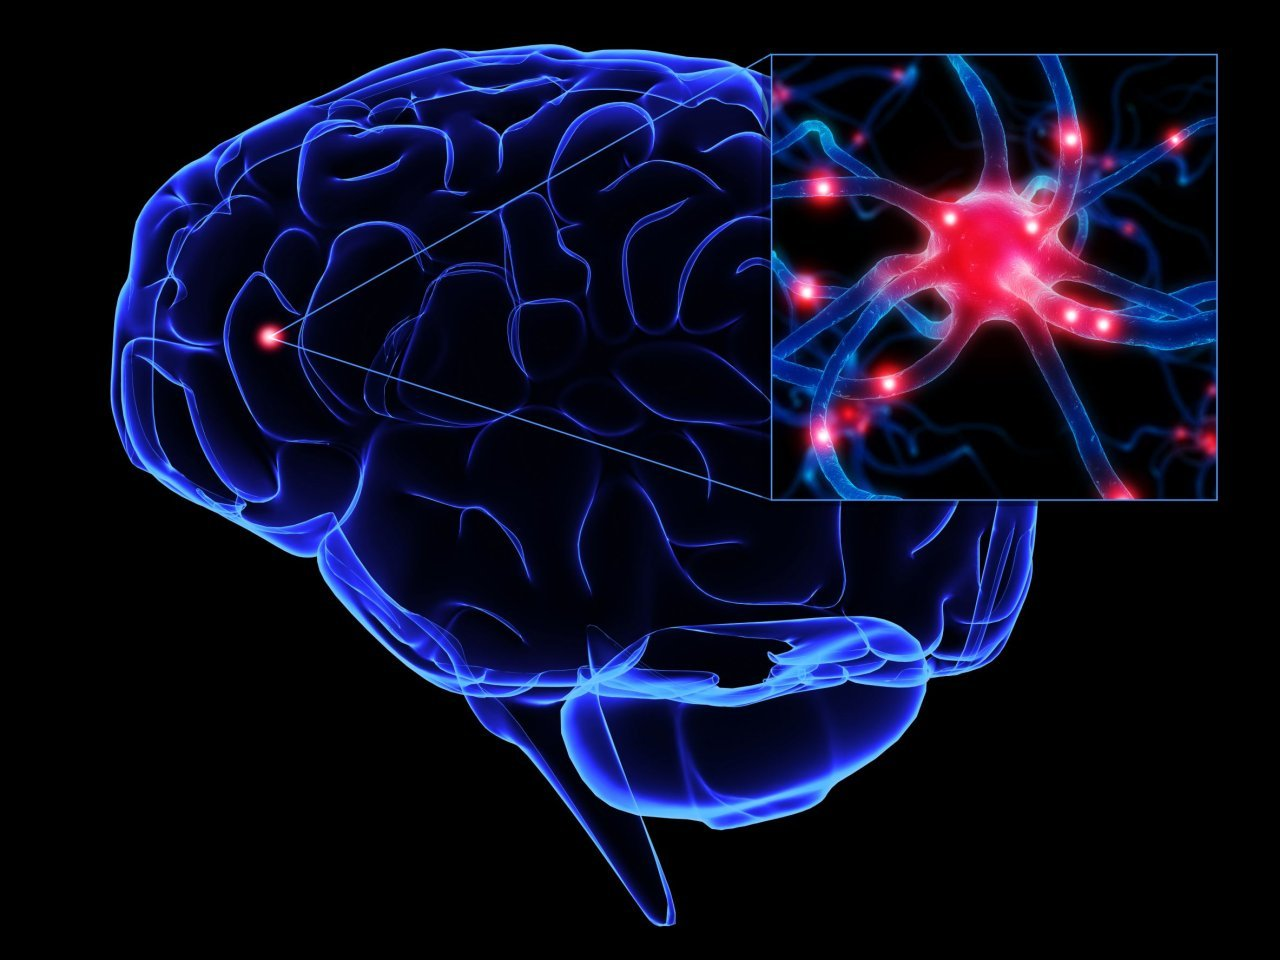 marijuanas effects on the human physiology and the brain